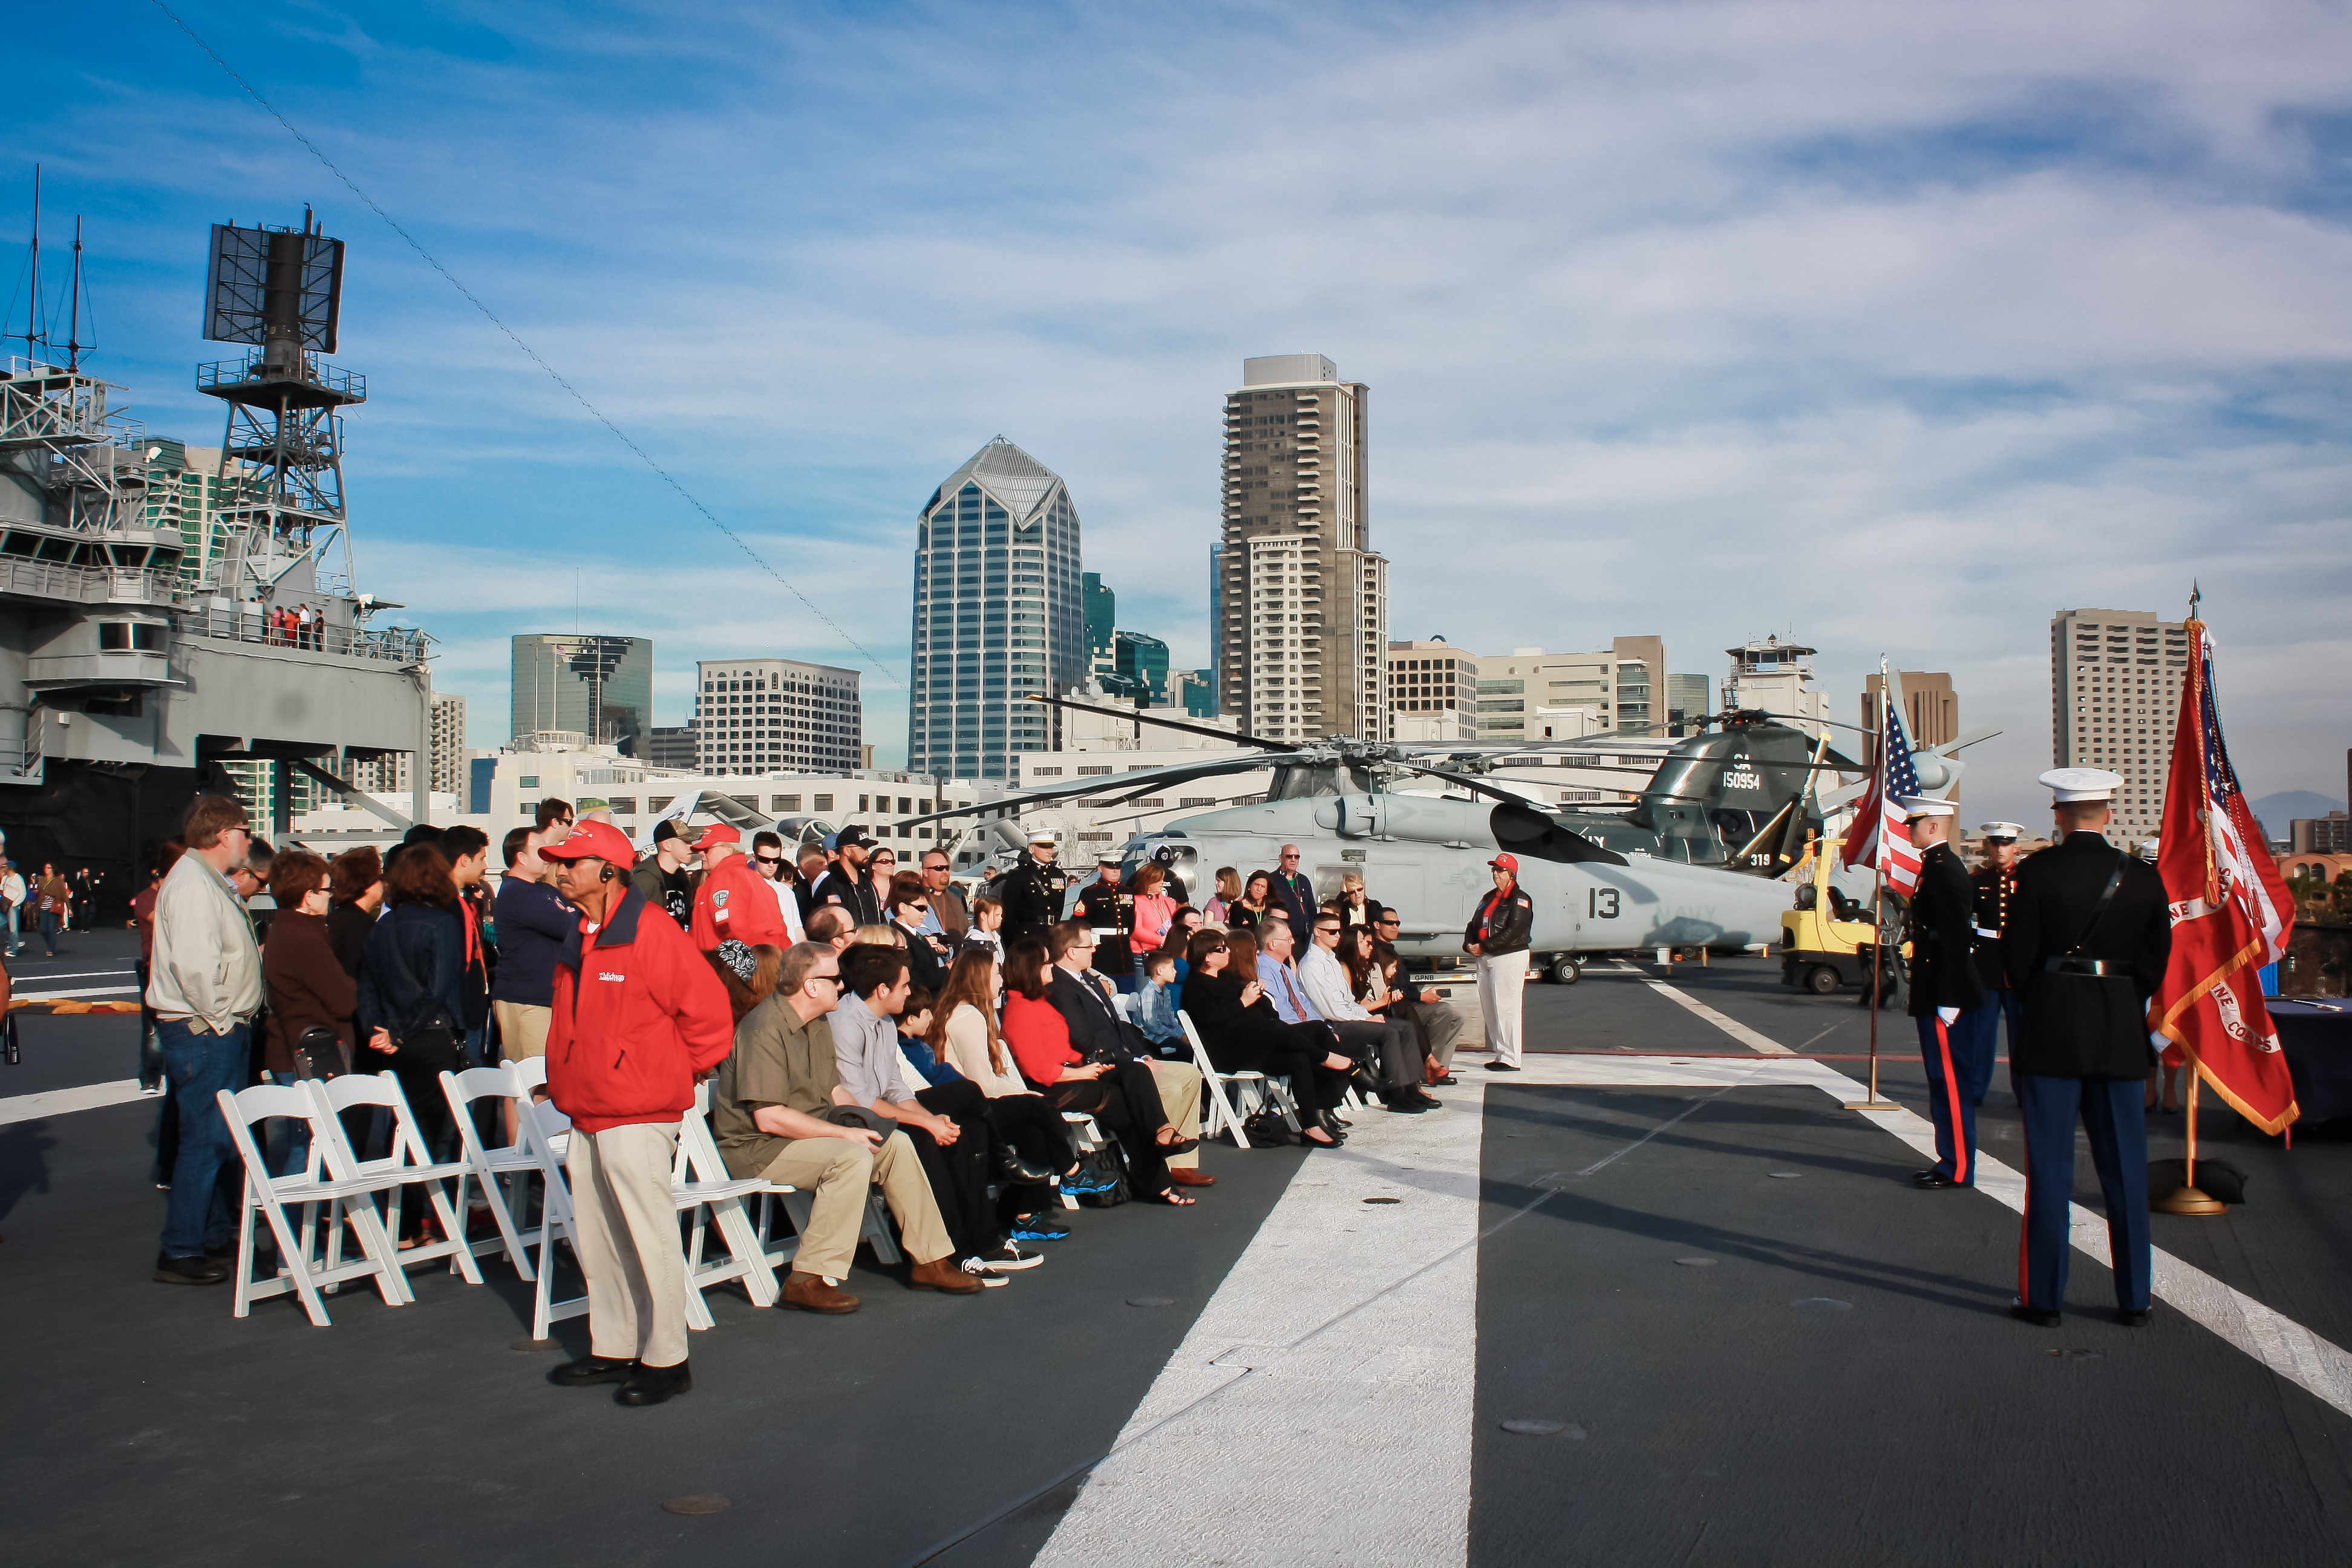 Image 7 of Aubry and Anthony's Commissioning Ceremony Proposal